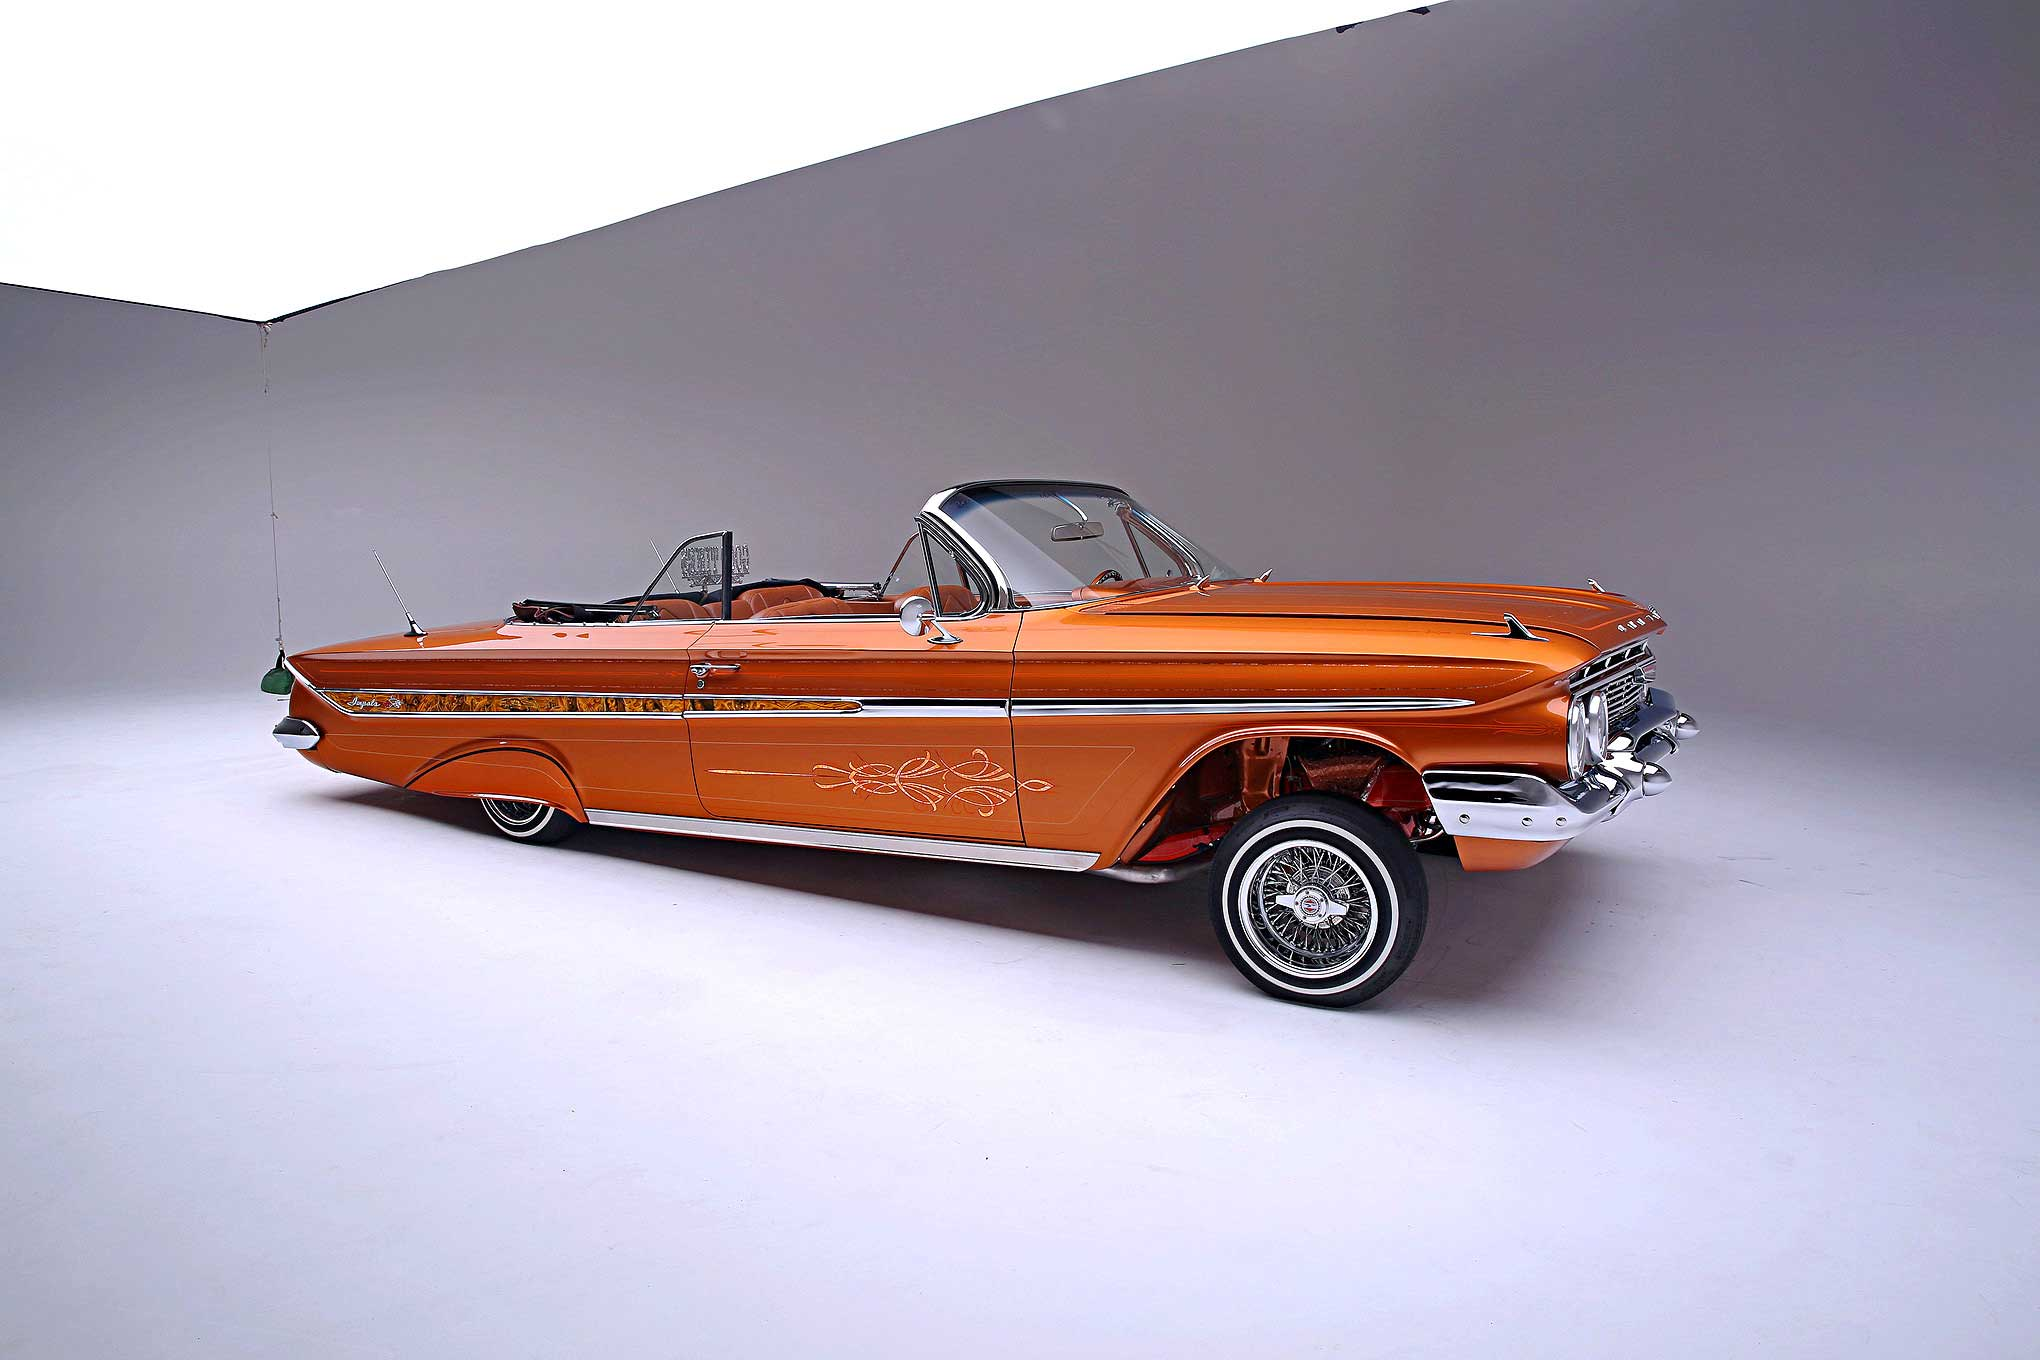 1961 chevrolet impala convertible top down passenger side view lowrider. Black Bedroom Furniture Sets. Home Design Ideas